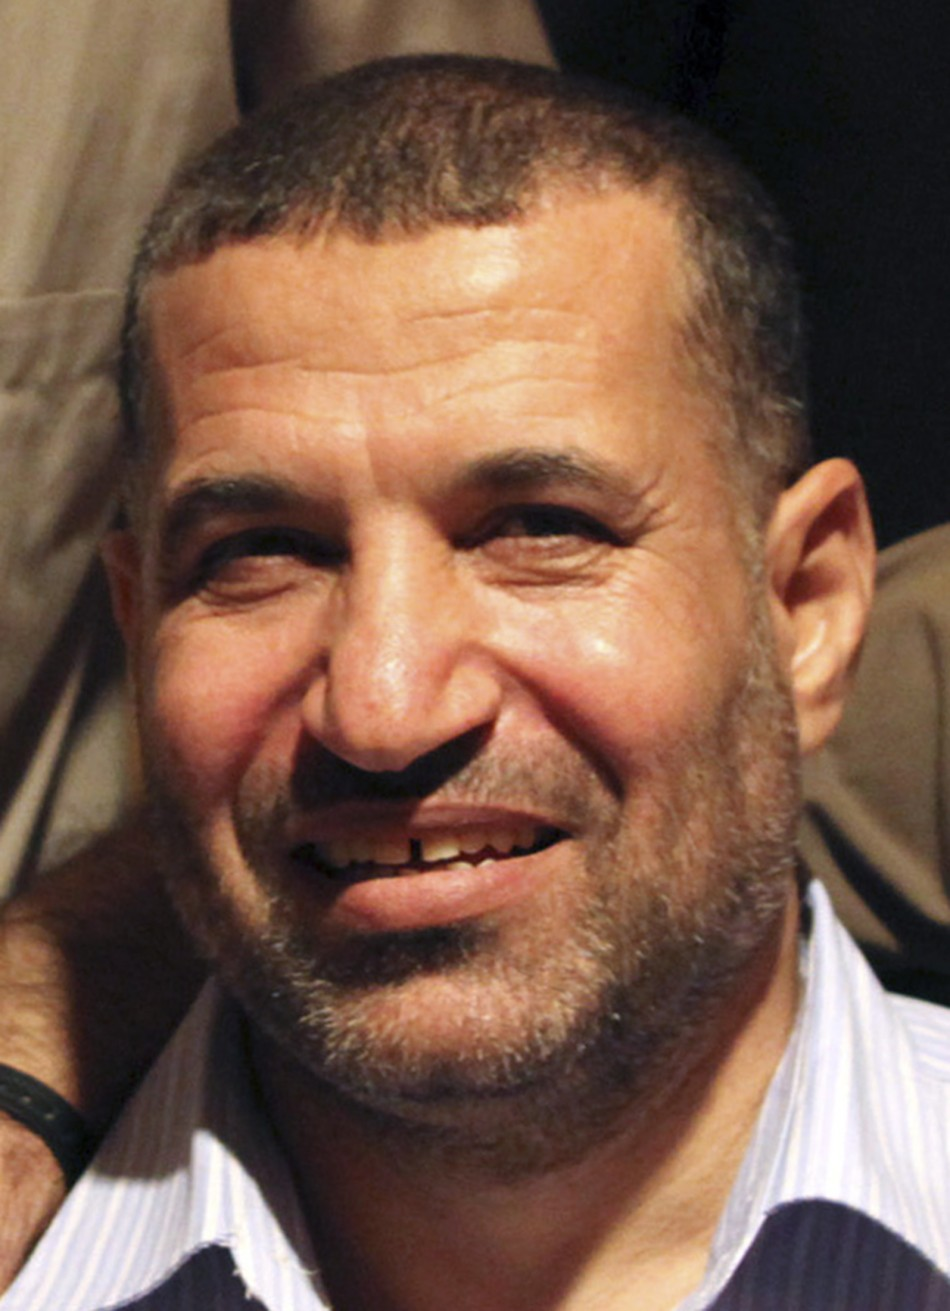 File picture shows Ahmed Al-Jabari, top commander of Hamas armed wing Al-Qassam brigades